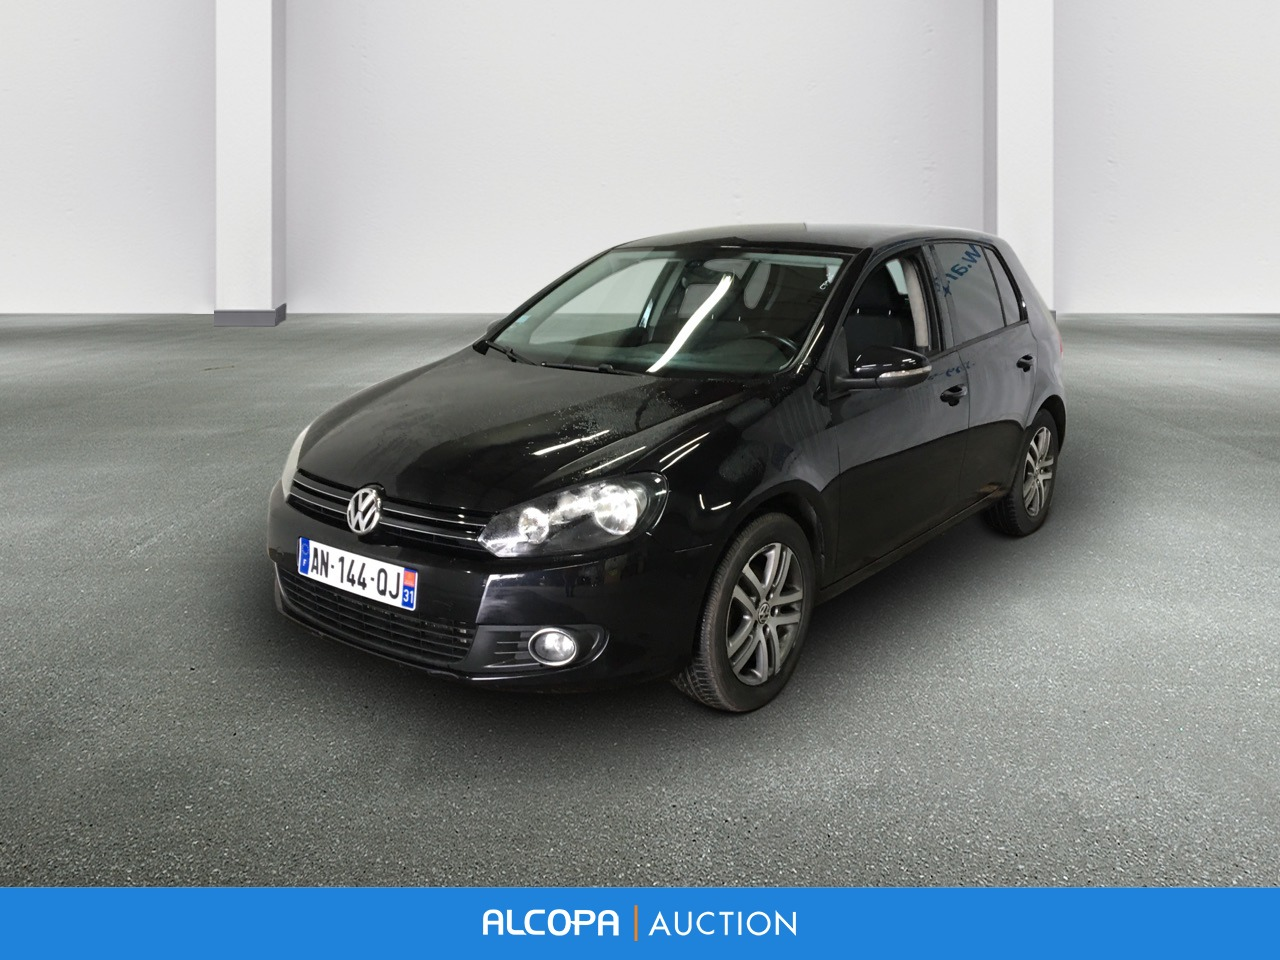 volkswagen golf golf 1 6 tdi 105 fap cr confortline alcopa auction. Black Bedroom Furniture Sets. Home Design Ideas